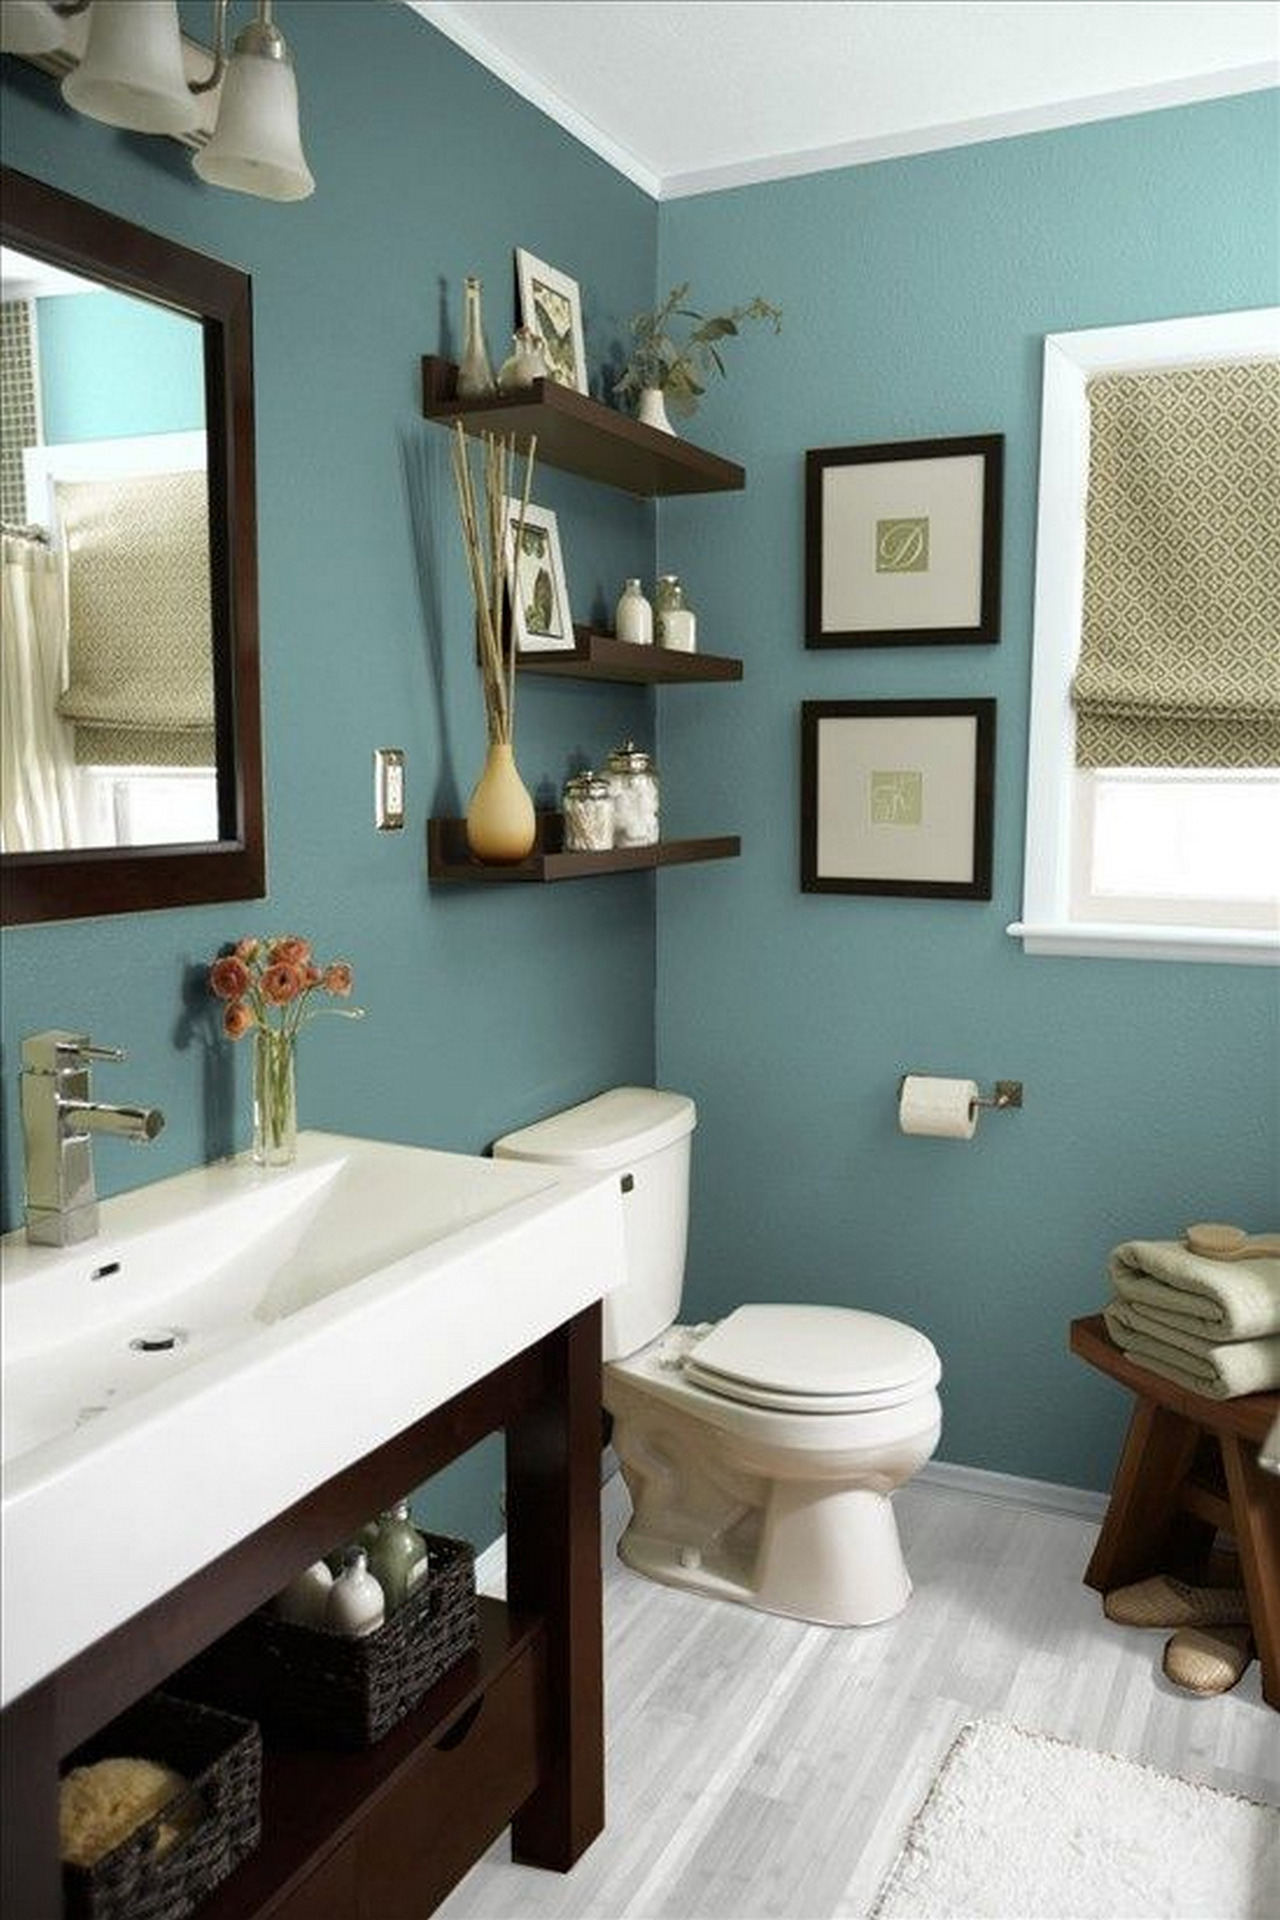 Ideas to Decorate Bathroom Beautiful 25 Best Bathroom Decor Ideas and Designs that are Trendy In 2020